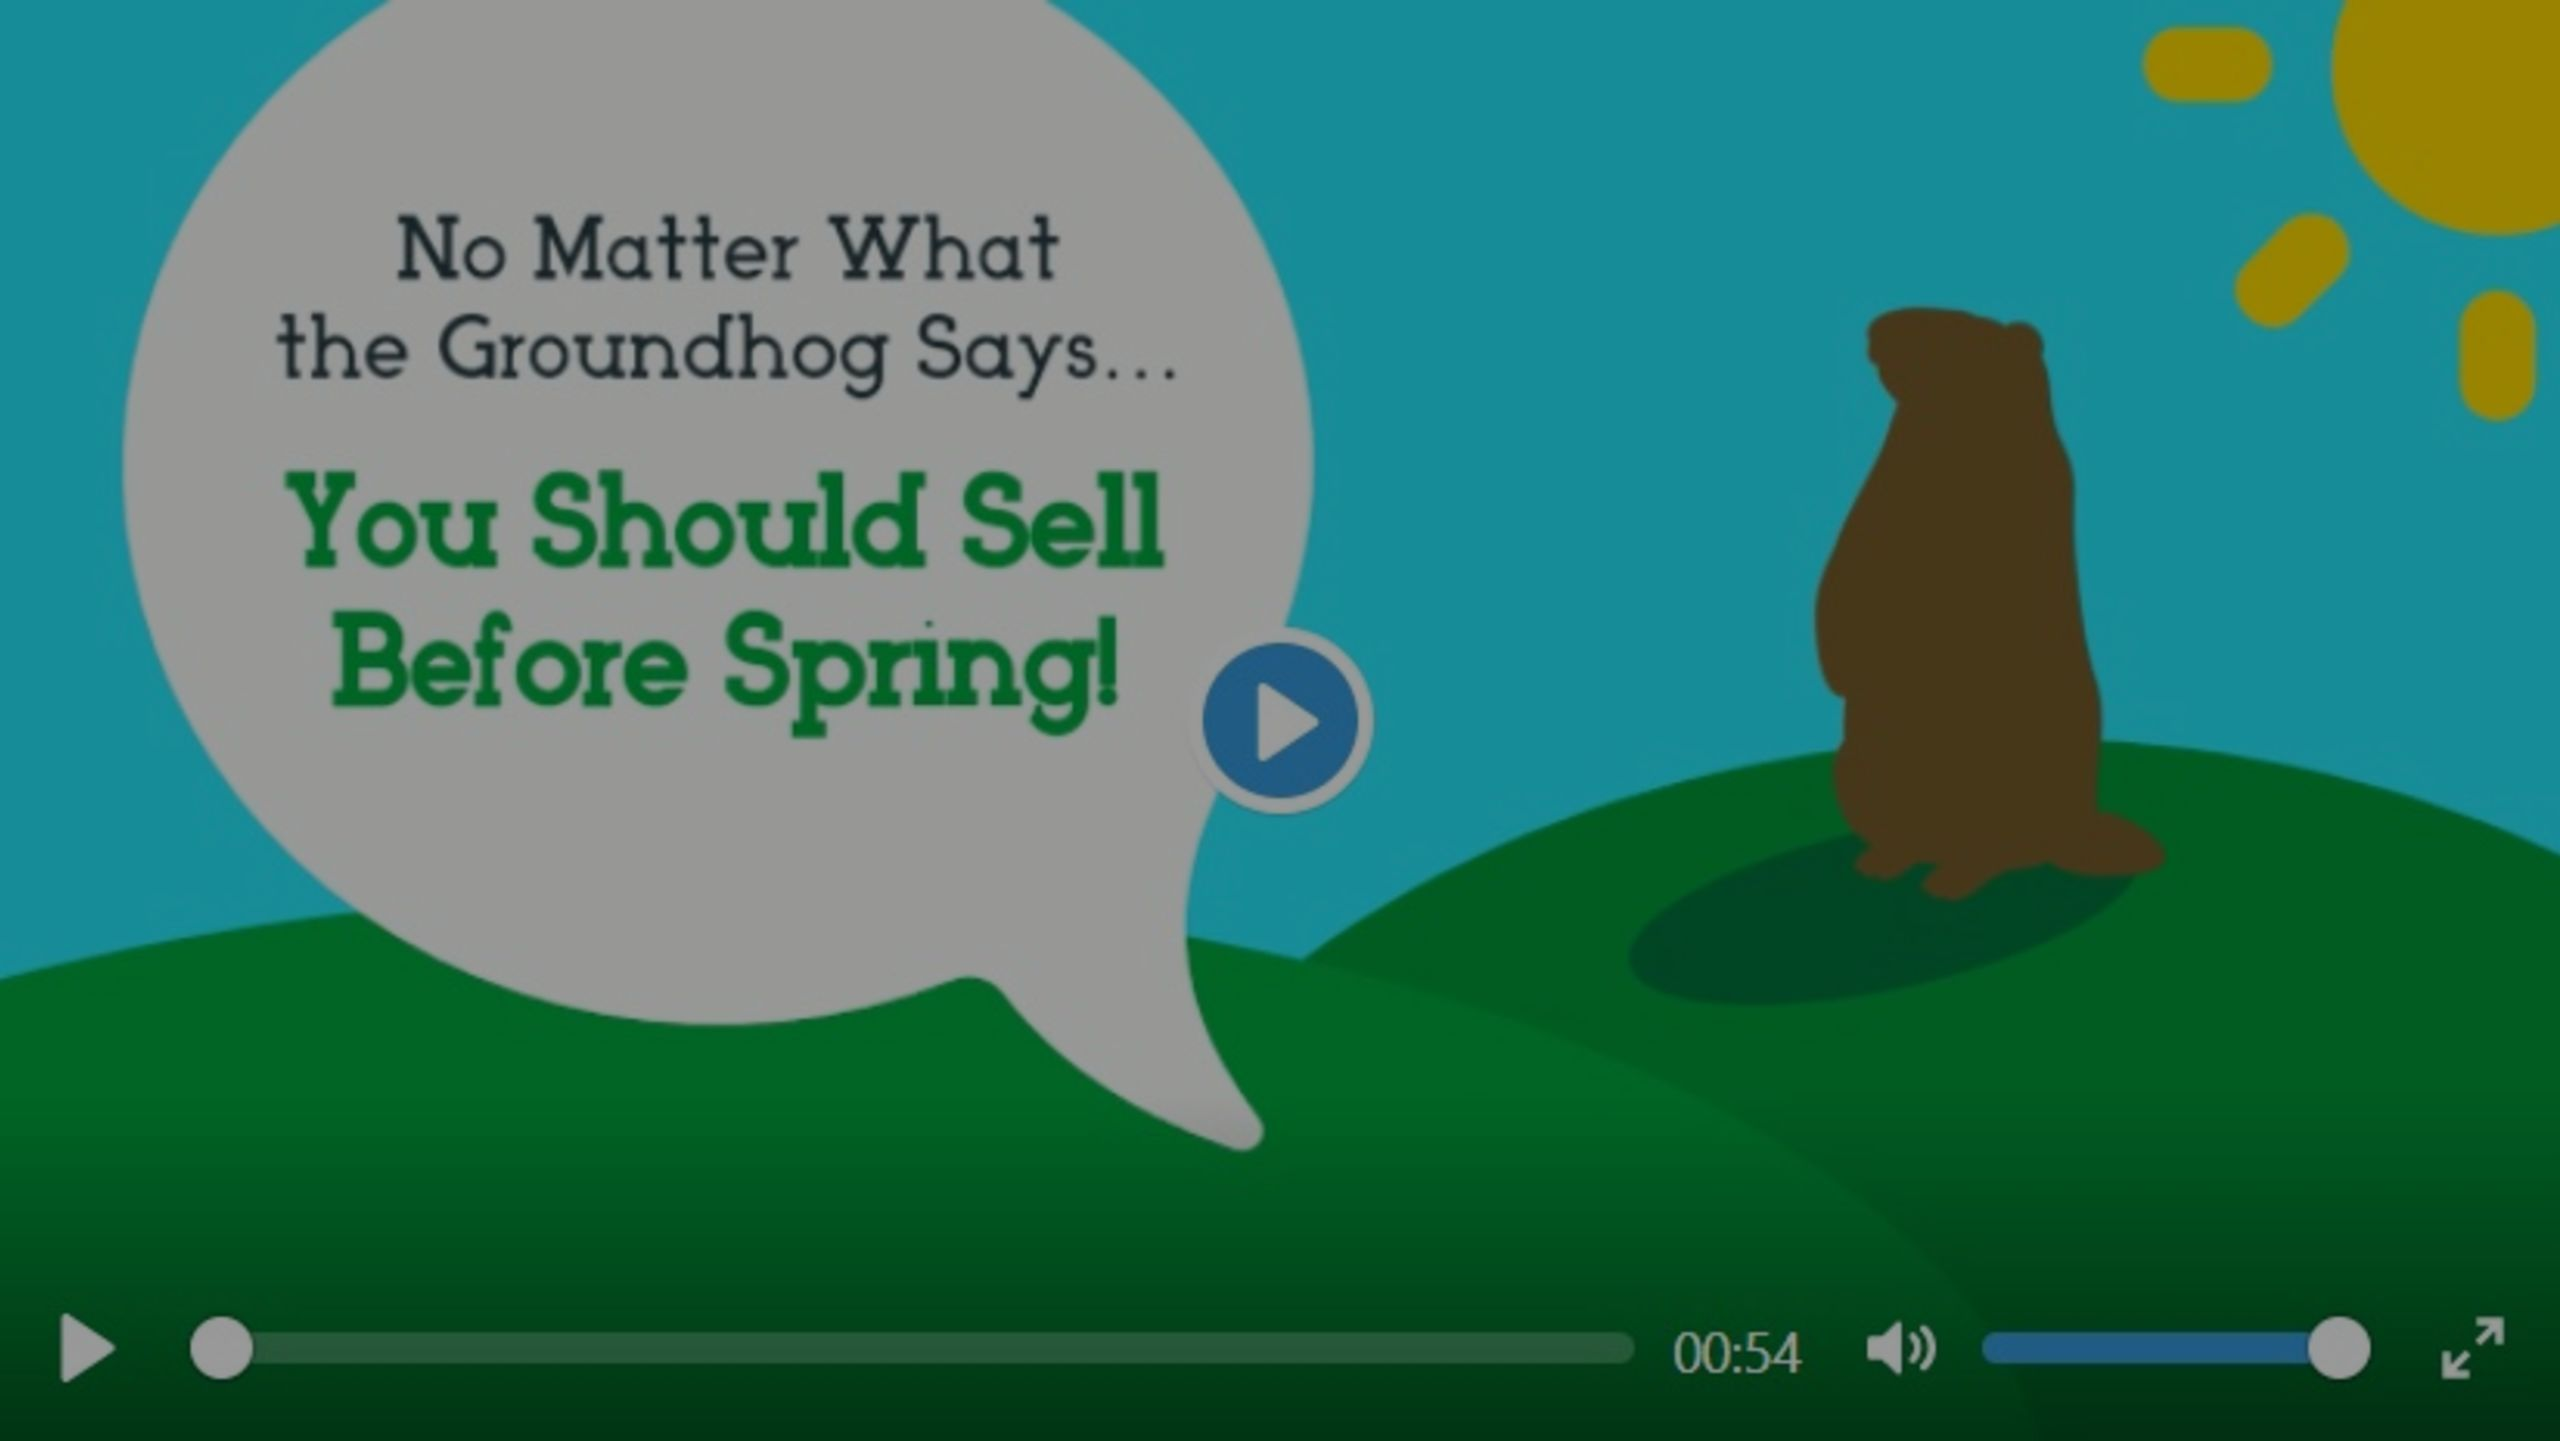 No Matter What the Groundhog Says… You Should Sell Before